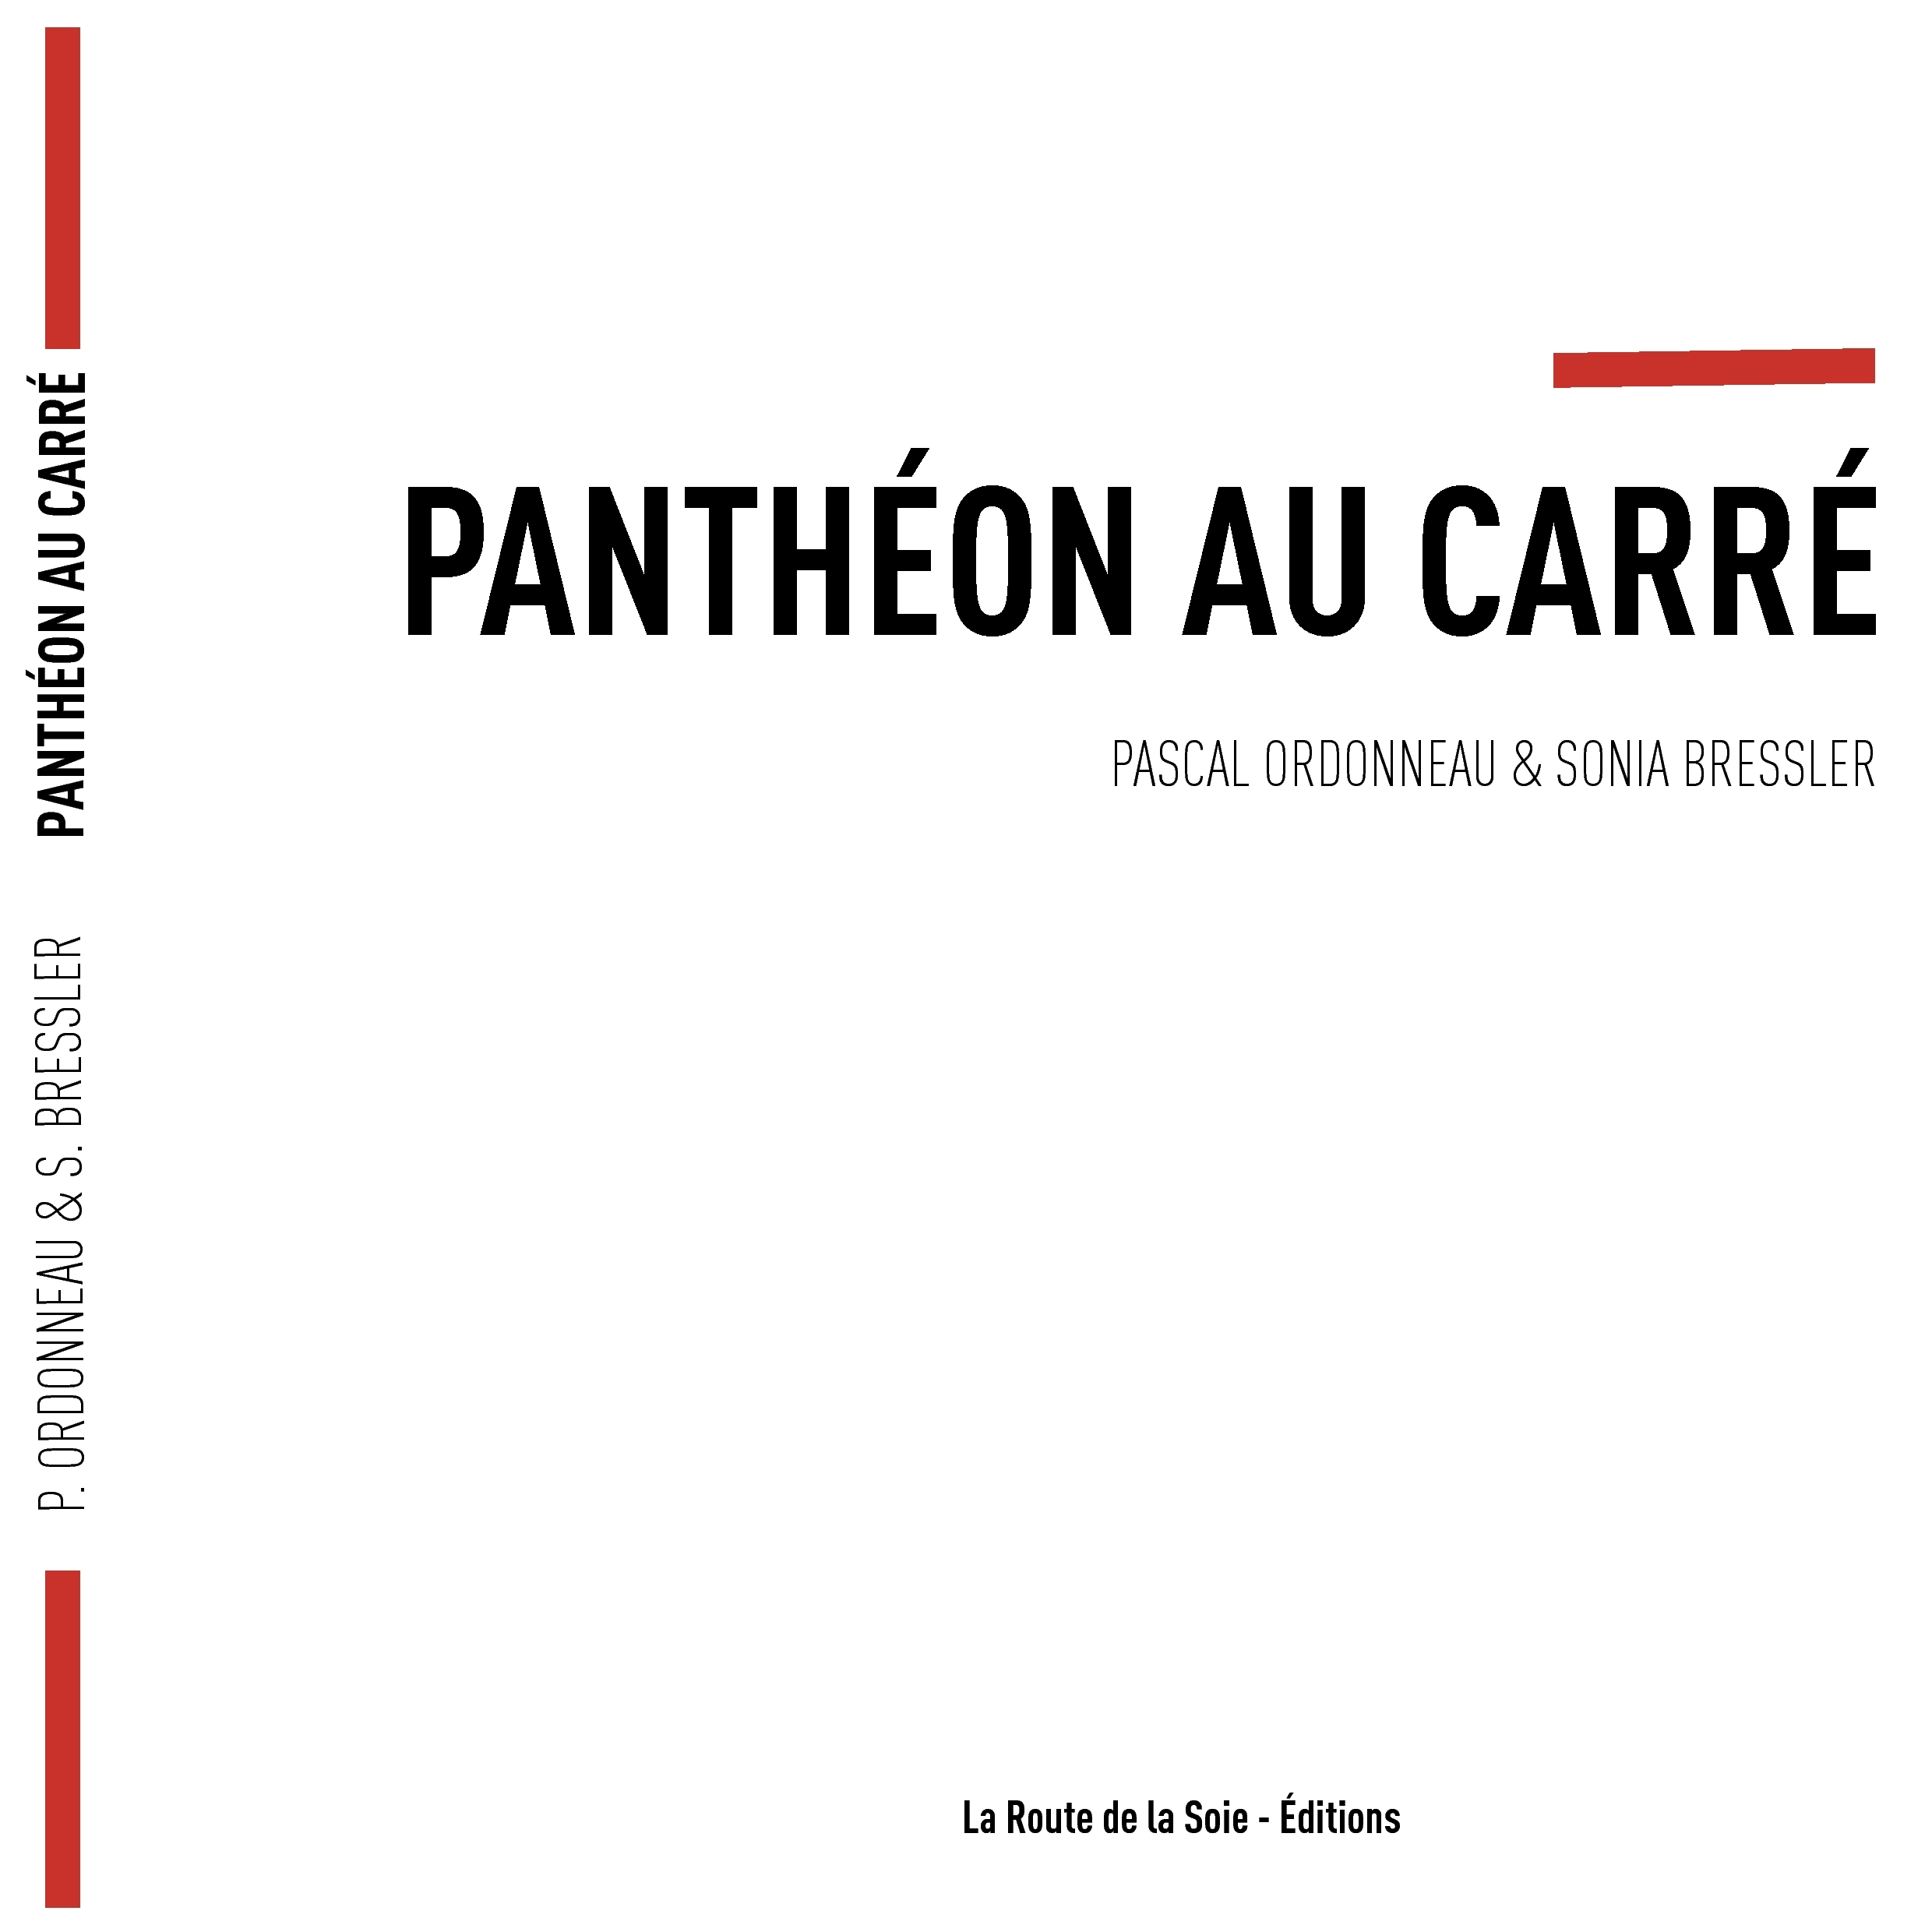 PANTHEON AU CARRE